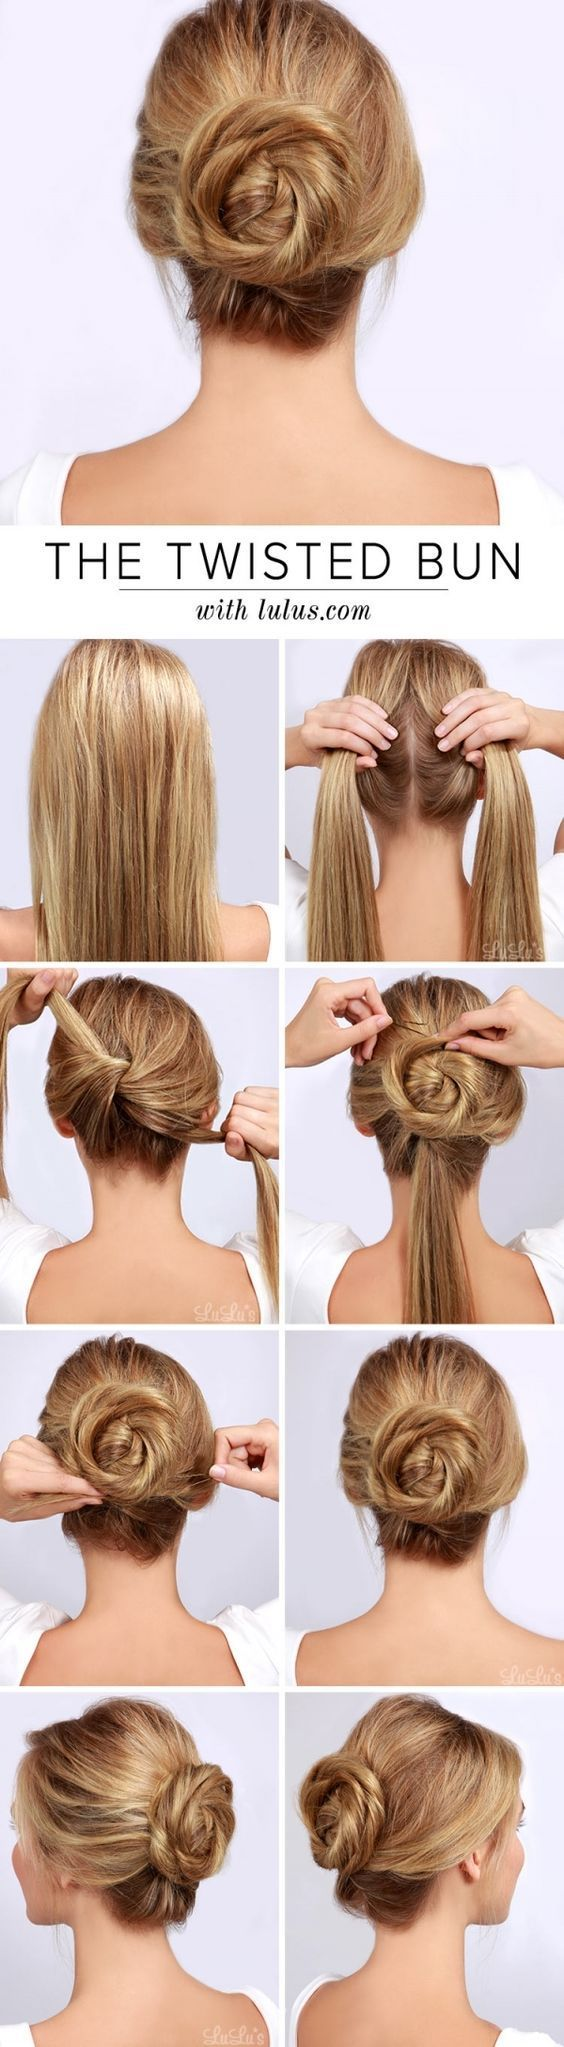 Easy Bun Hairstyles Beauteous A Collection Of 23 Super Chic Bun Hairstyle Tutorials  Styles